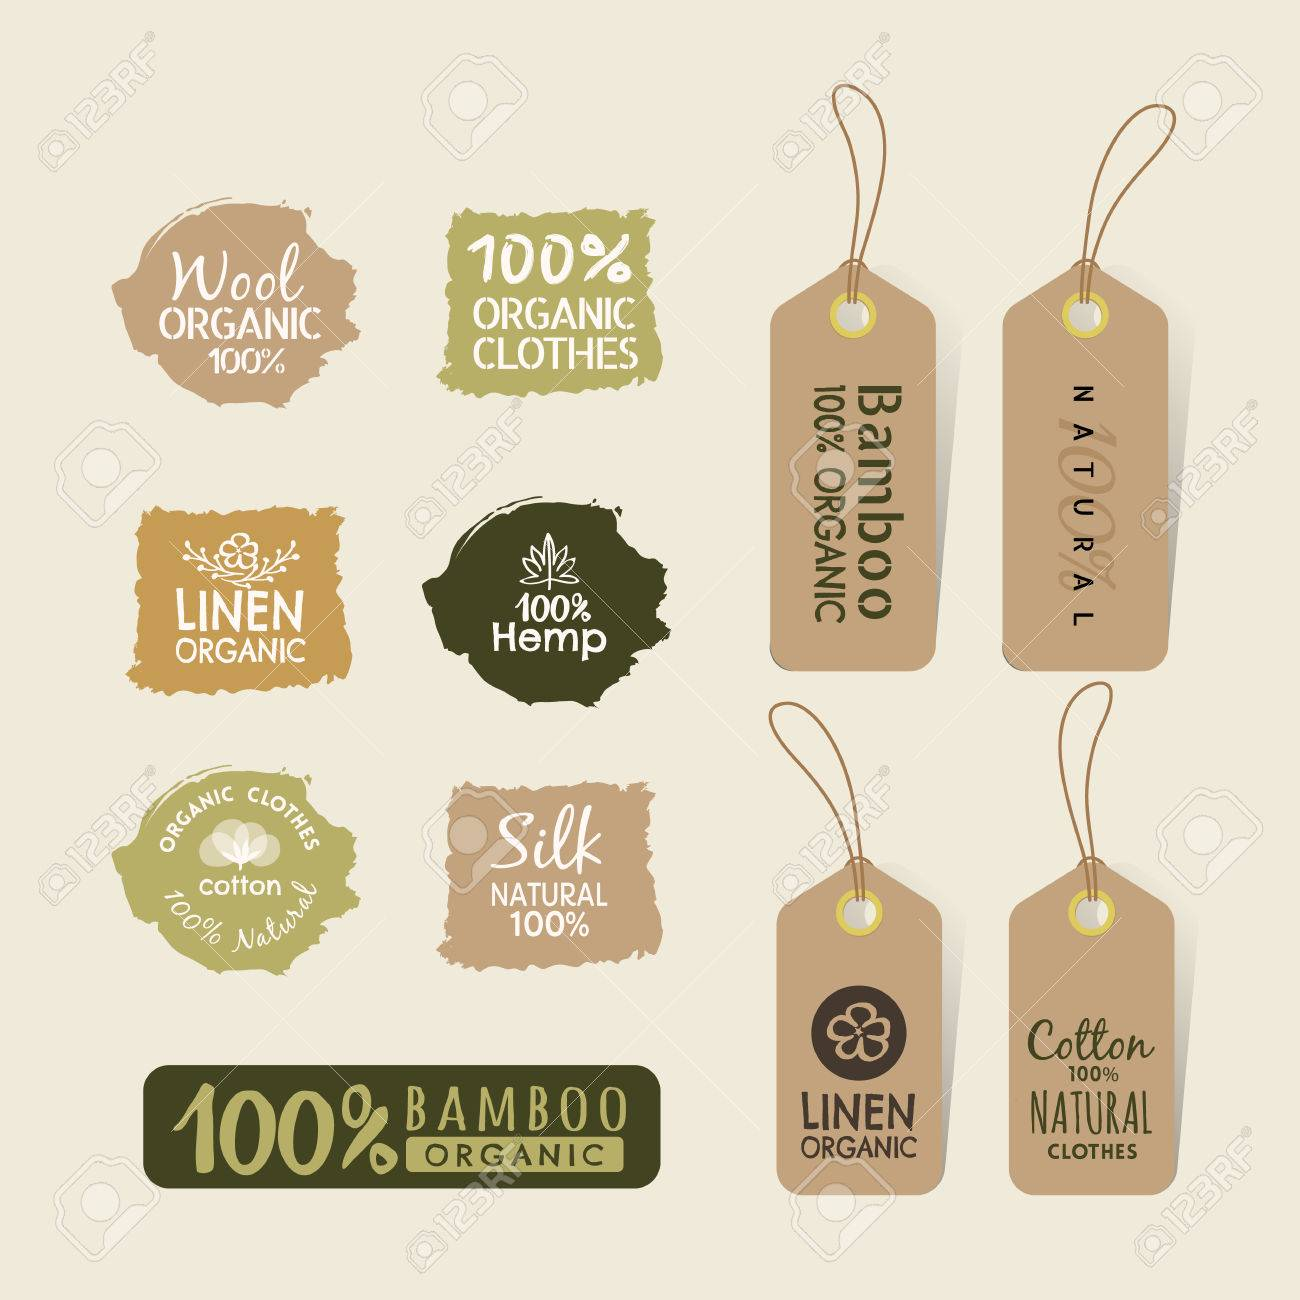 Set of eco friendly fabric tag labels collection design elements - 53790823